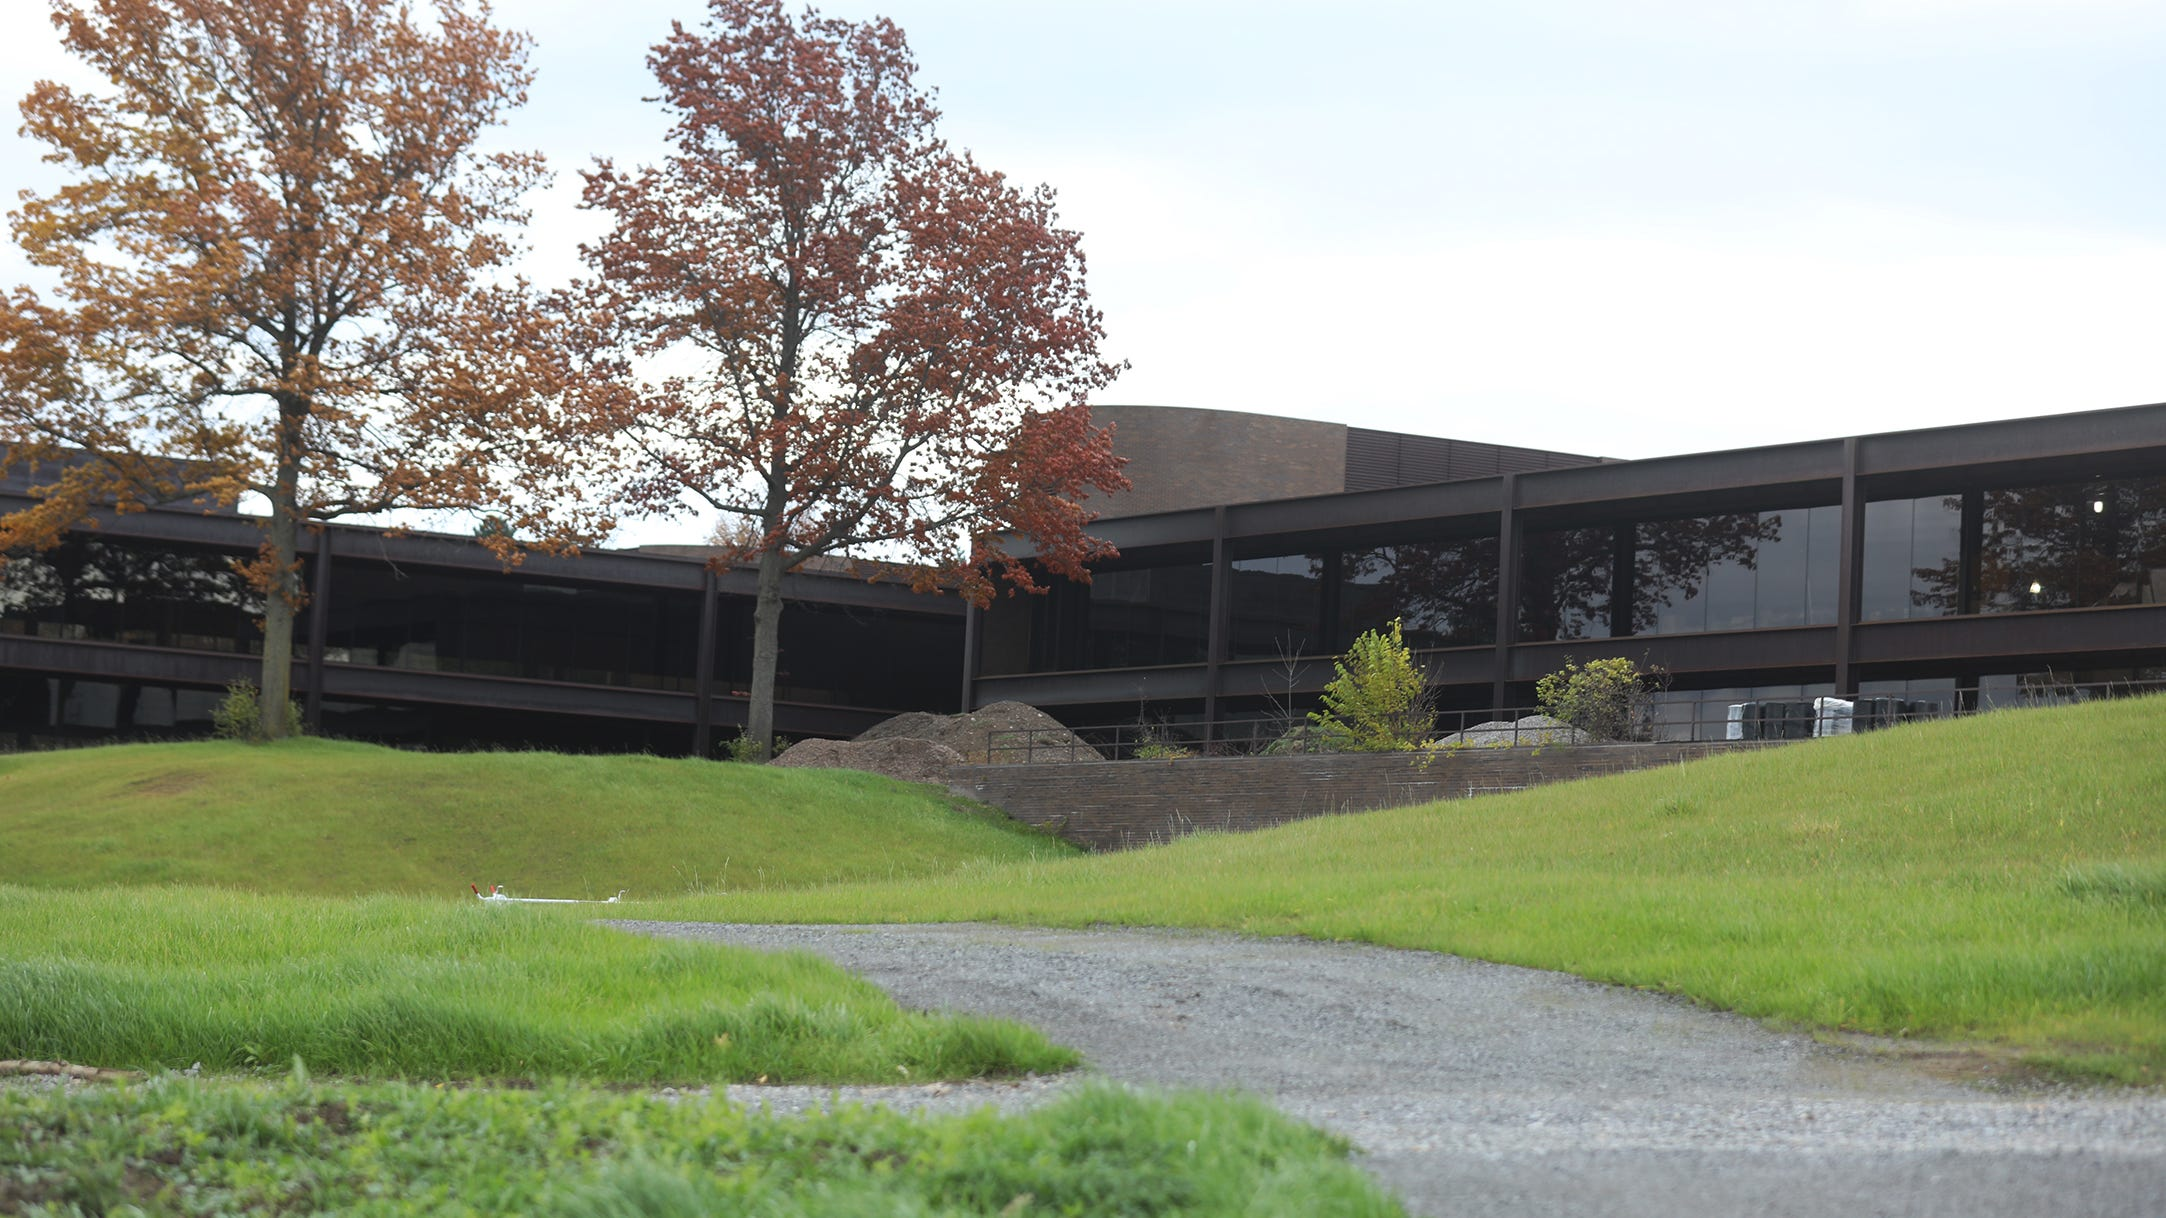 Riverwood Tech Campus mirrors Silicon Valley culture, brings tech startups to Henrietta